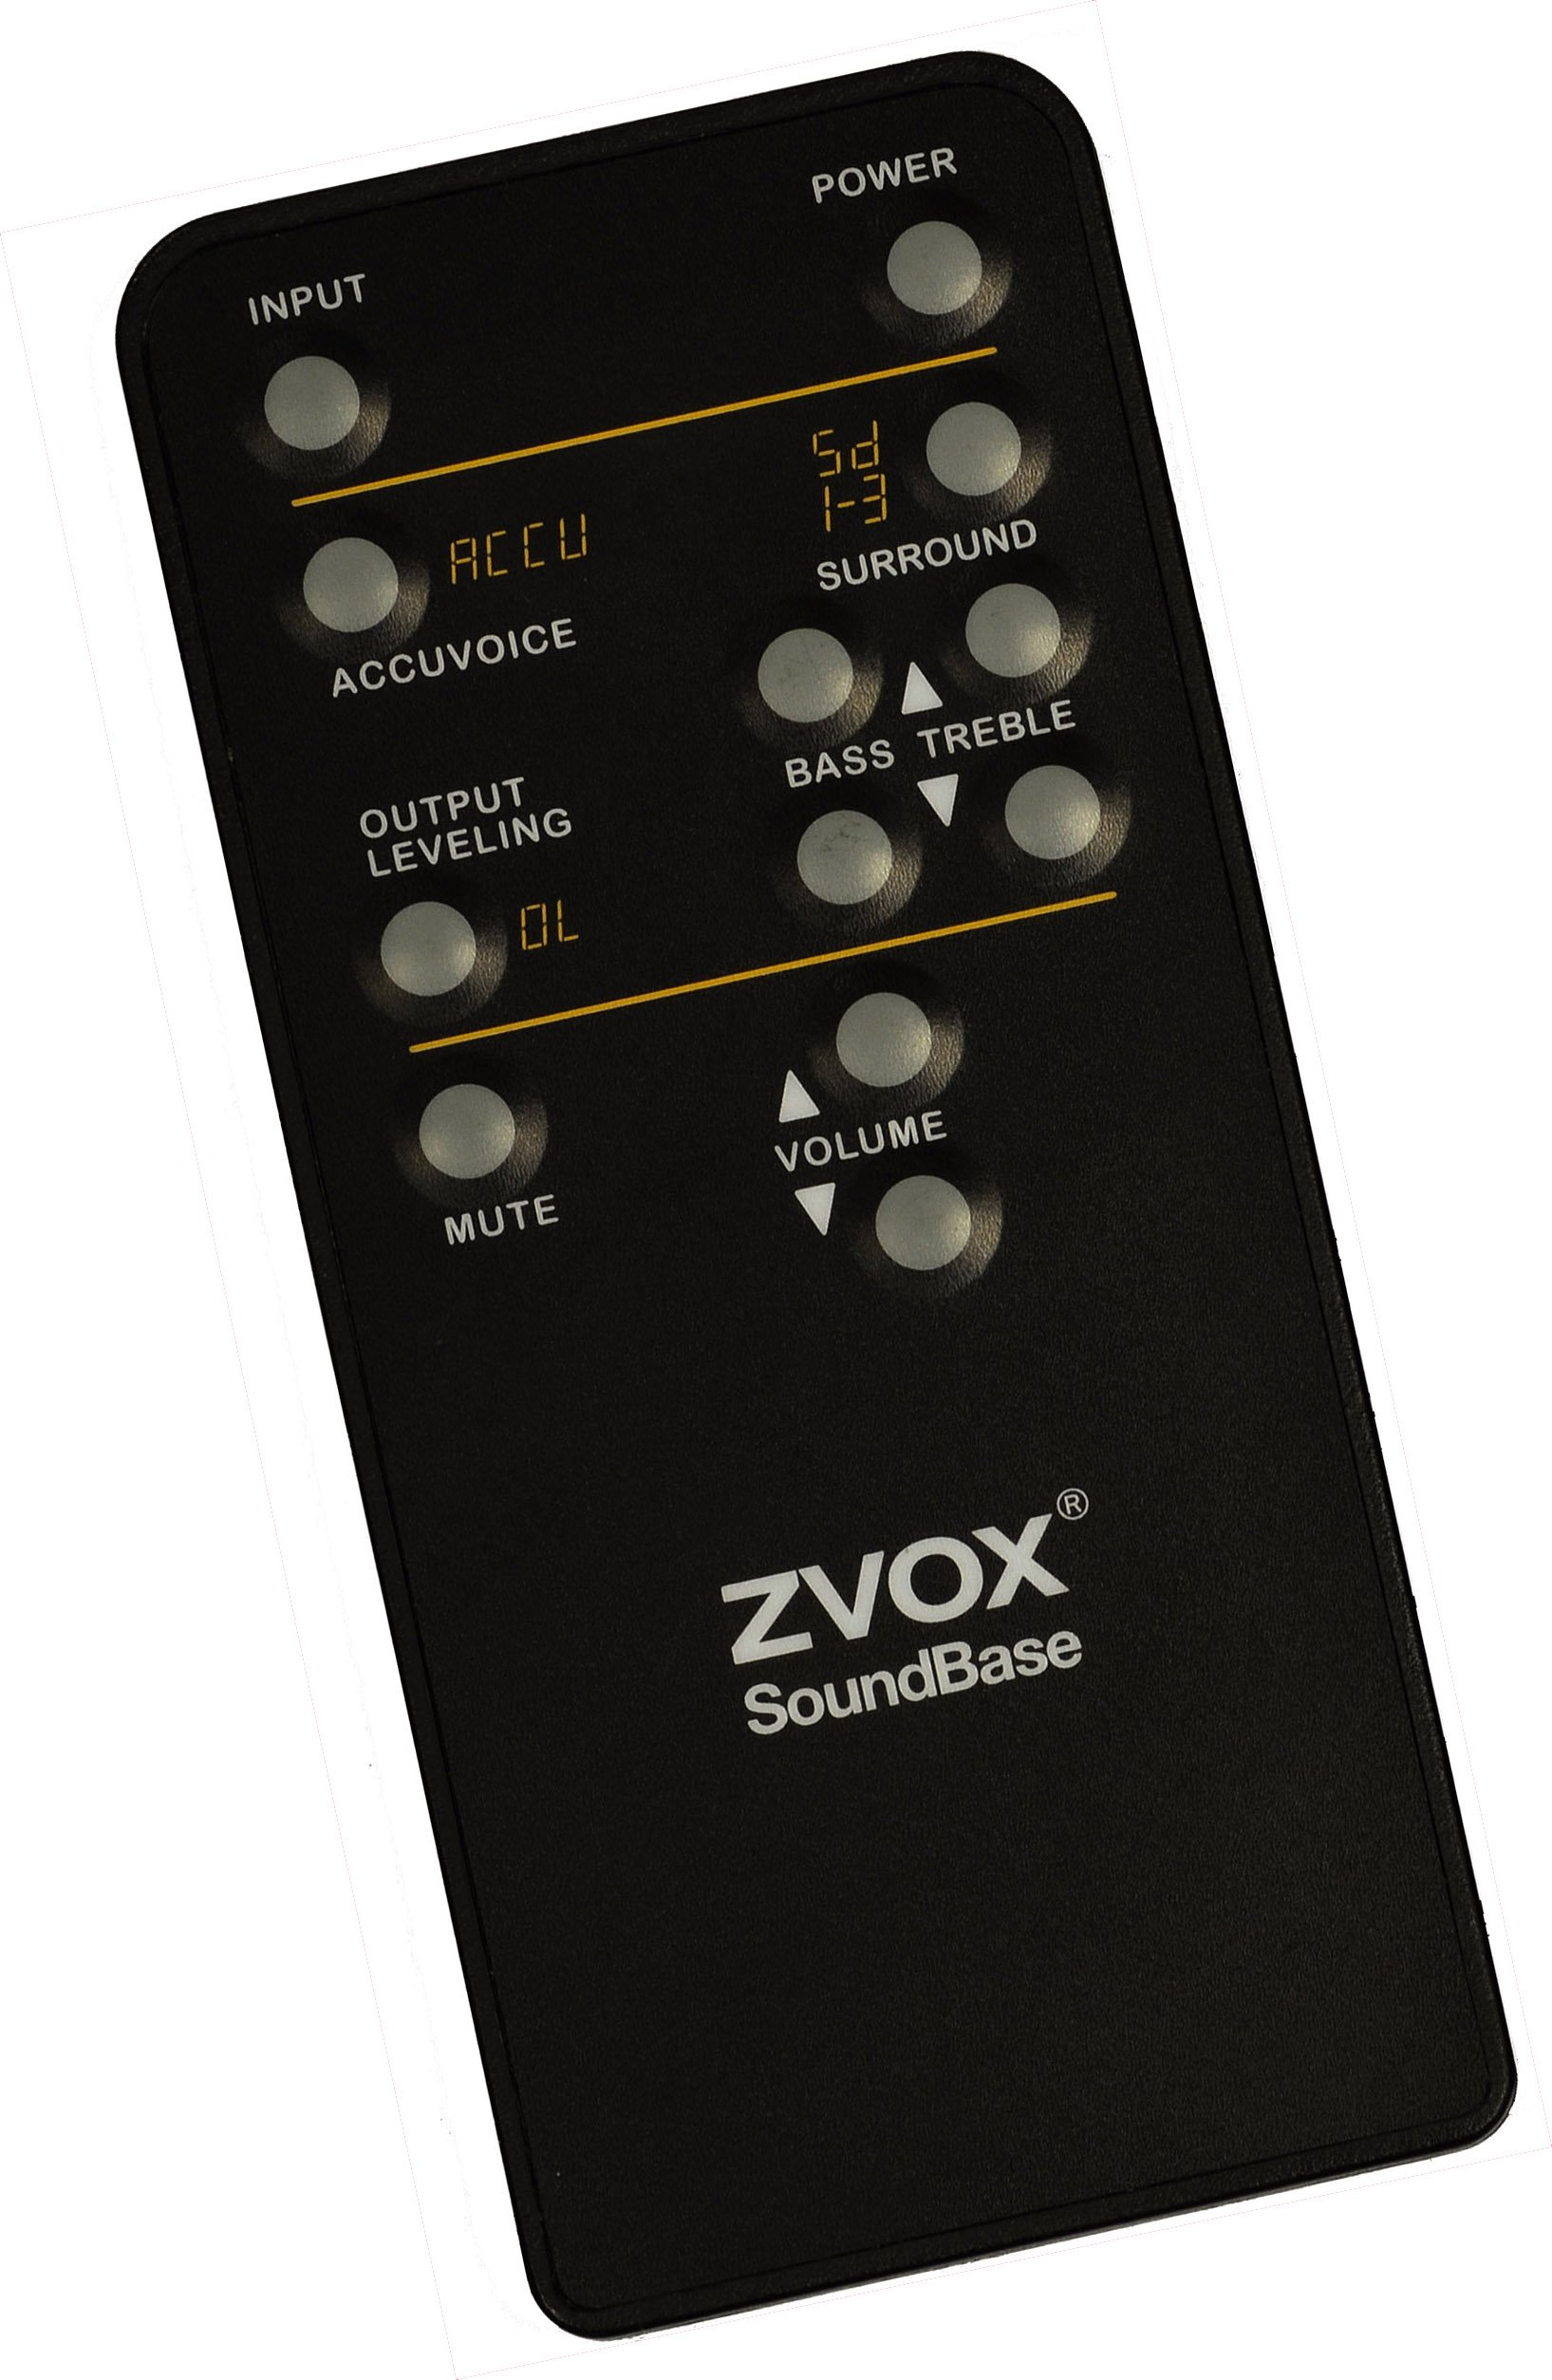 ZVOX SoundBase 570 30''Sound Bar with Built-In Subwoofer, Bluetooth, AccuVoice by ZVOX